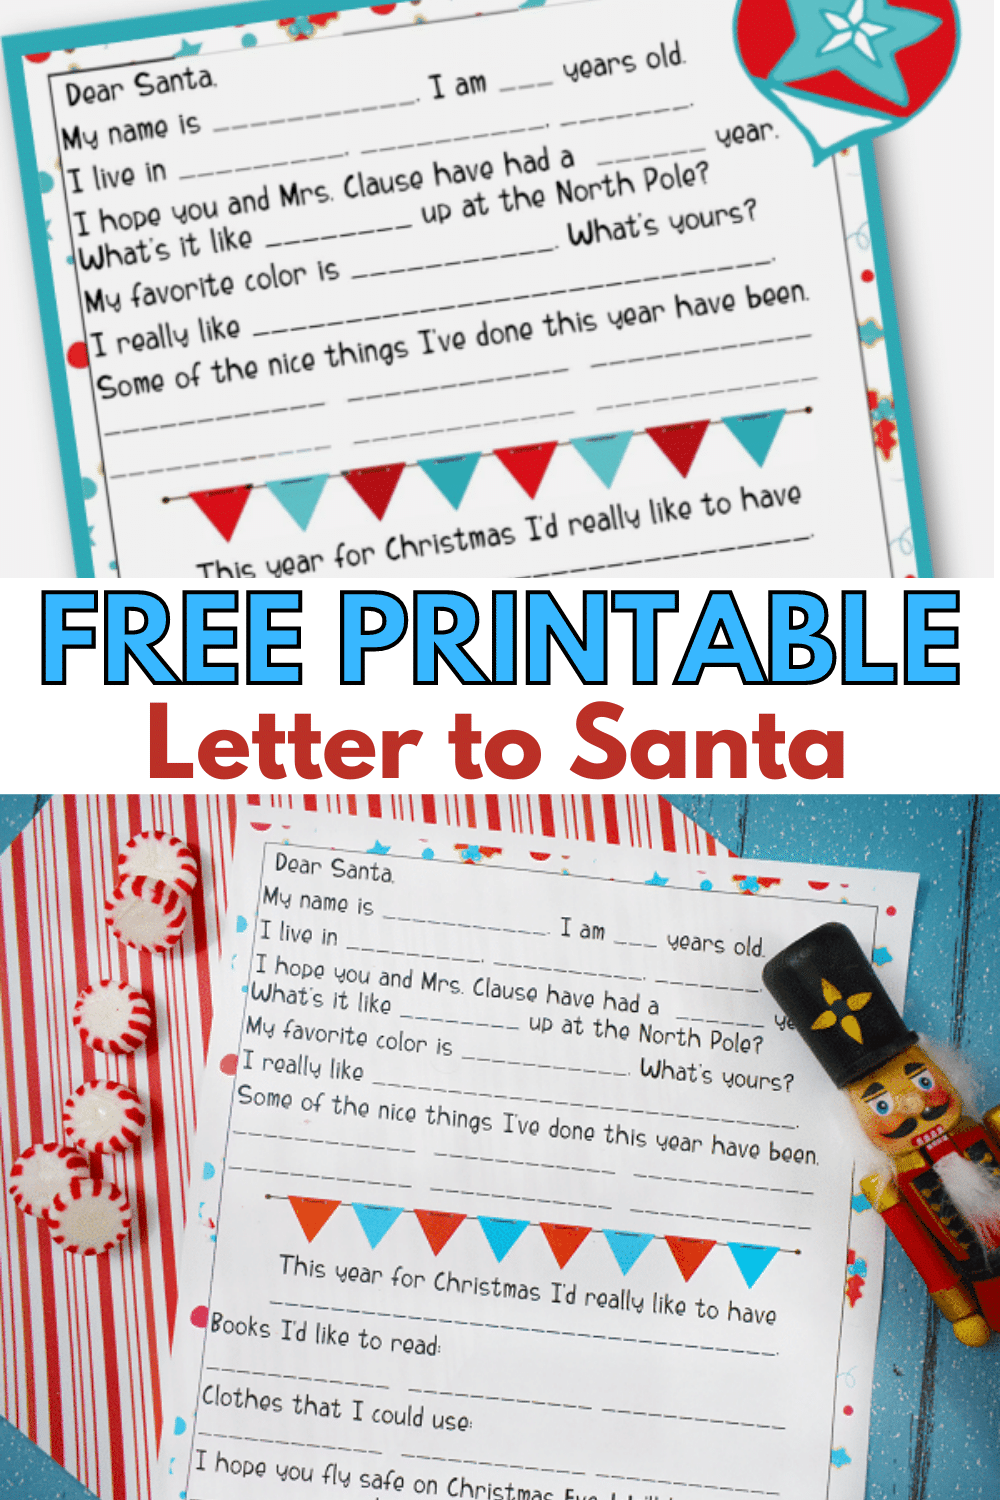 This free printable letter to Santa is not only perfect for gathering your child's Christmas wish list, but also for reinforcing good habits and behaviors. Plus, it makes a great keepsake! #LetterToSanta #printable via @wondermomwannab